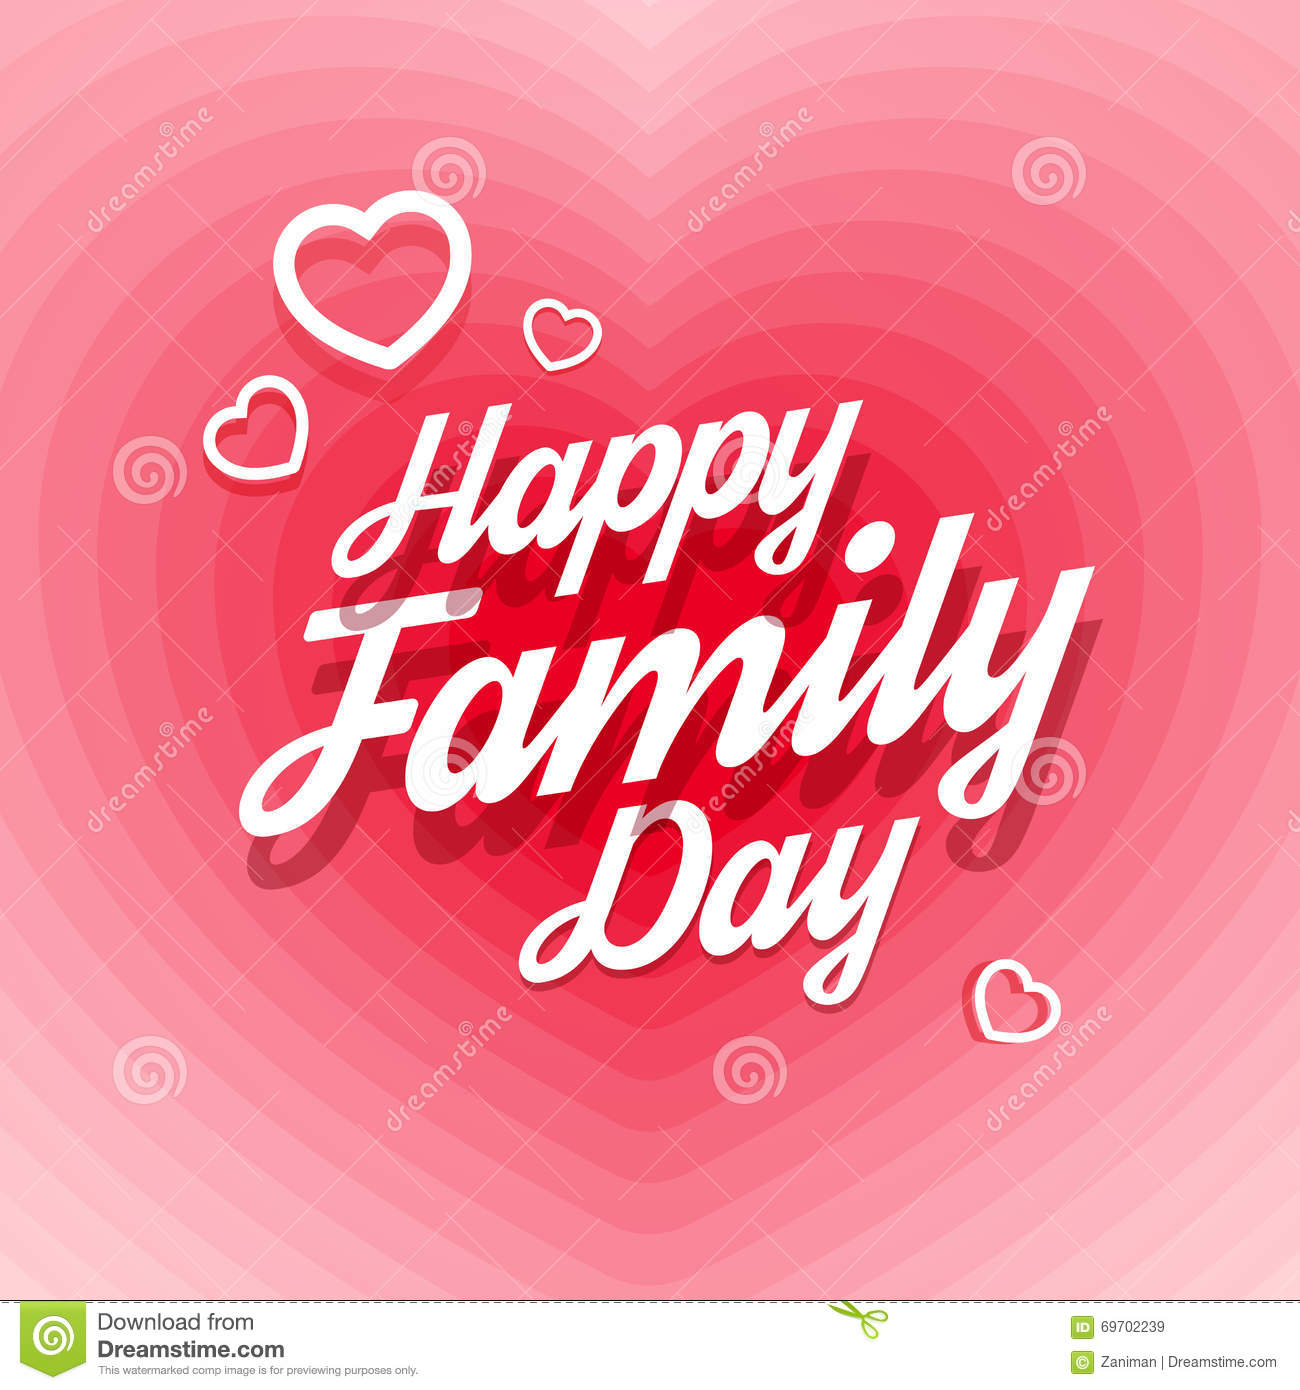 happy family day greeting card stock vector image 69702239 clip art mother's day humorous clip art mother's day cards